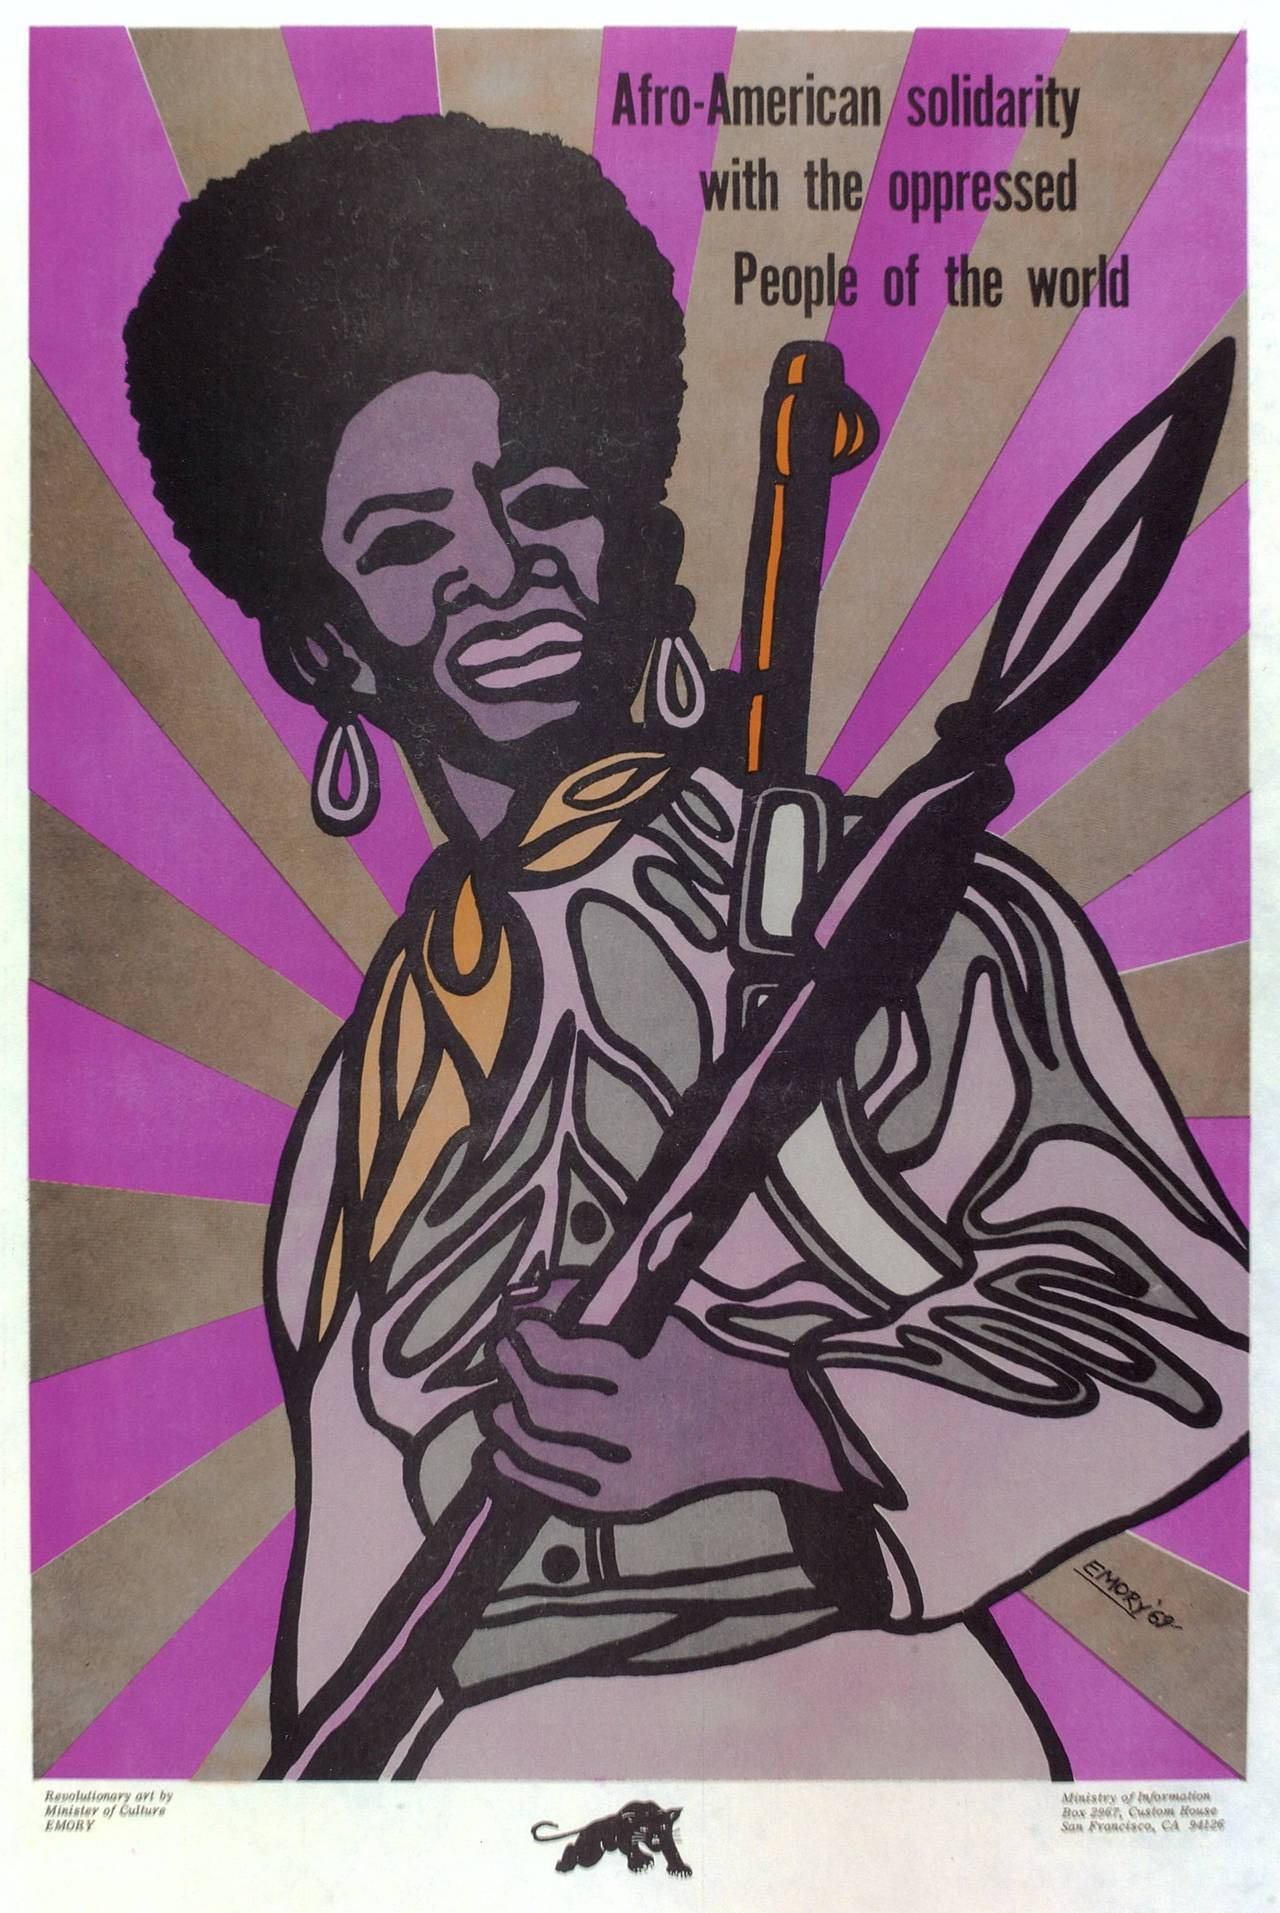 """Afro-American solidarity with the oppressed people of the world"" Poster by Minister of Culture for the Black Panther Party, Emory Douglas, 1969"